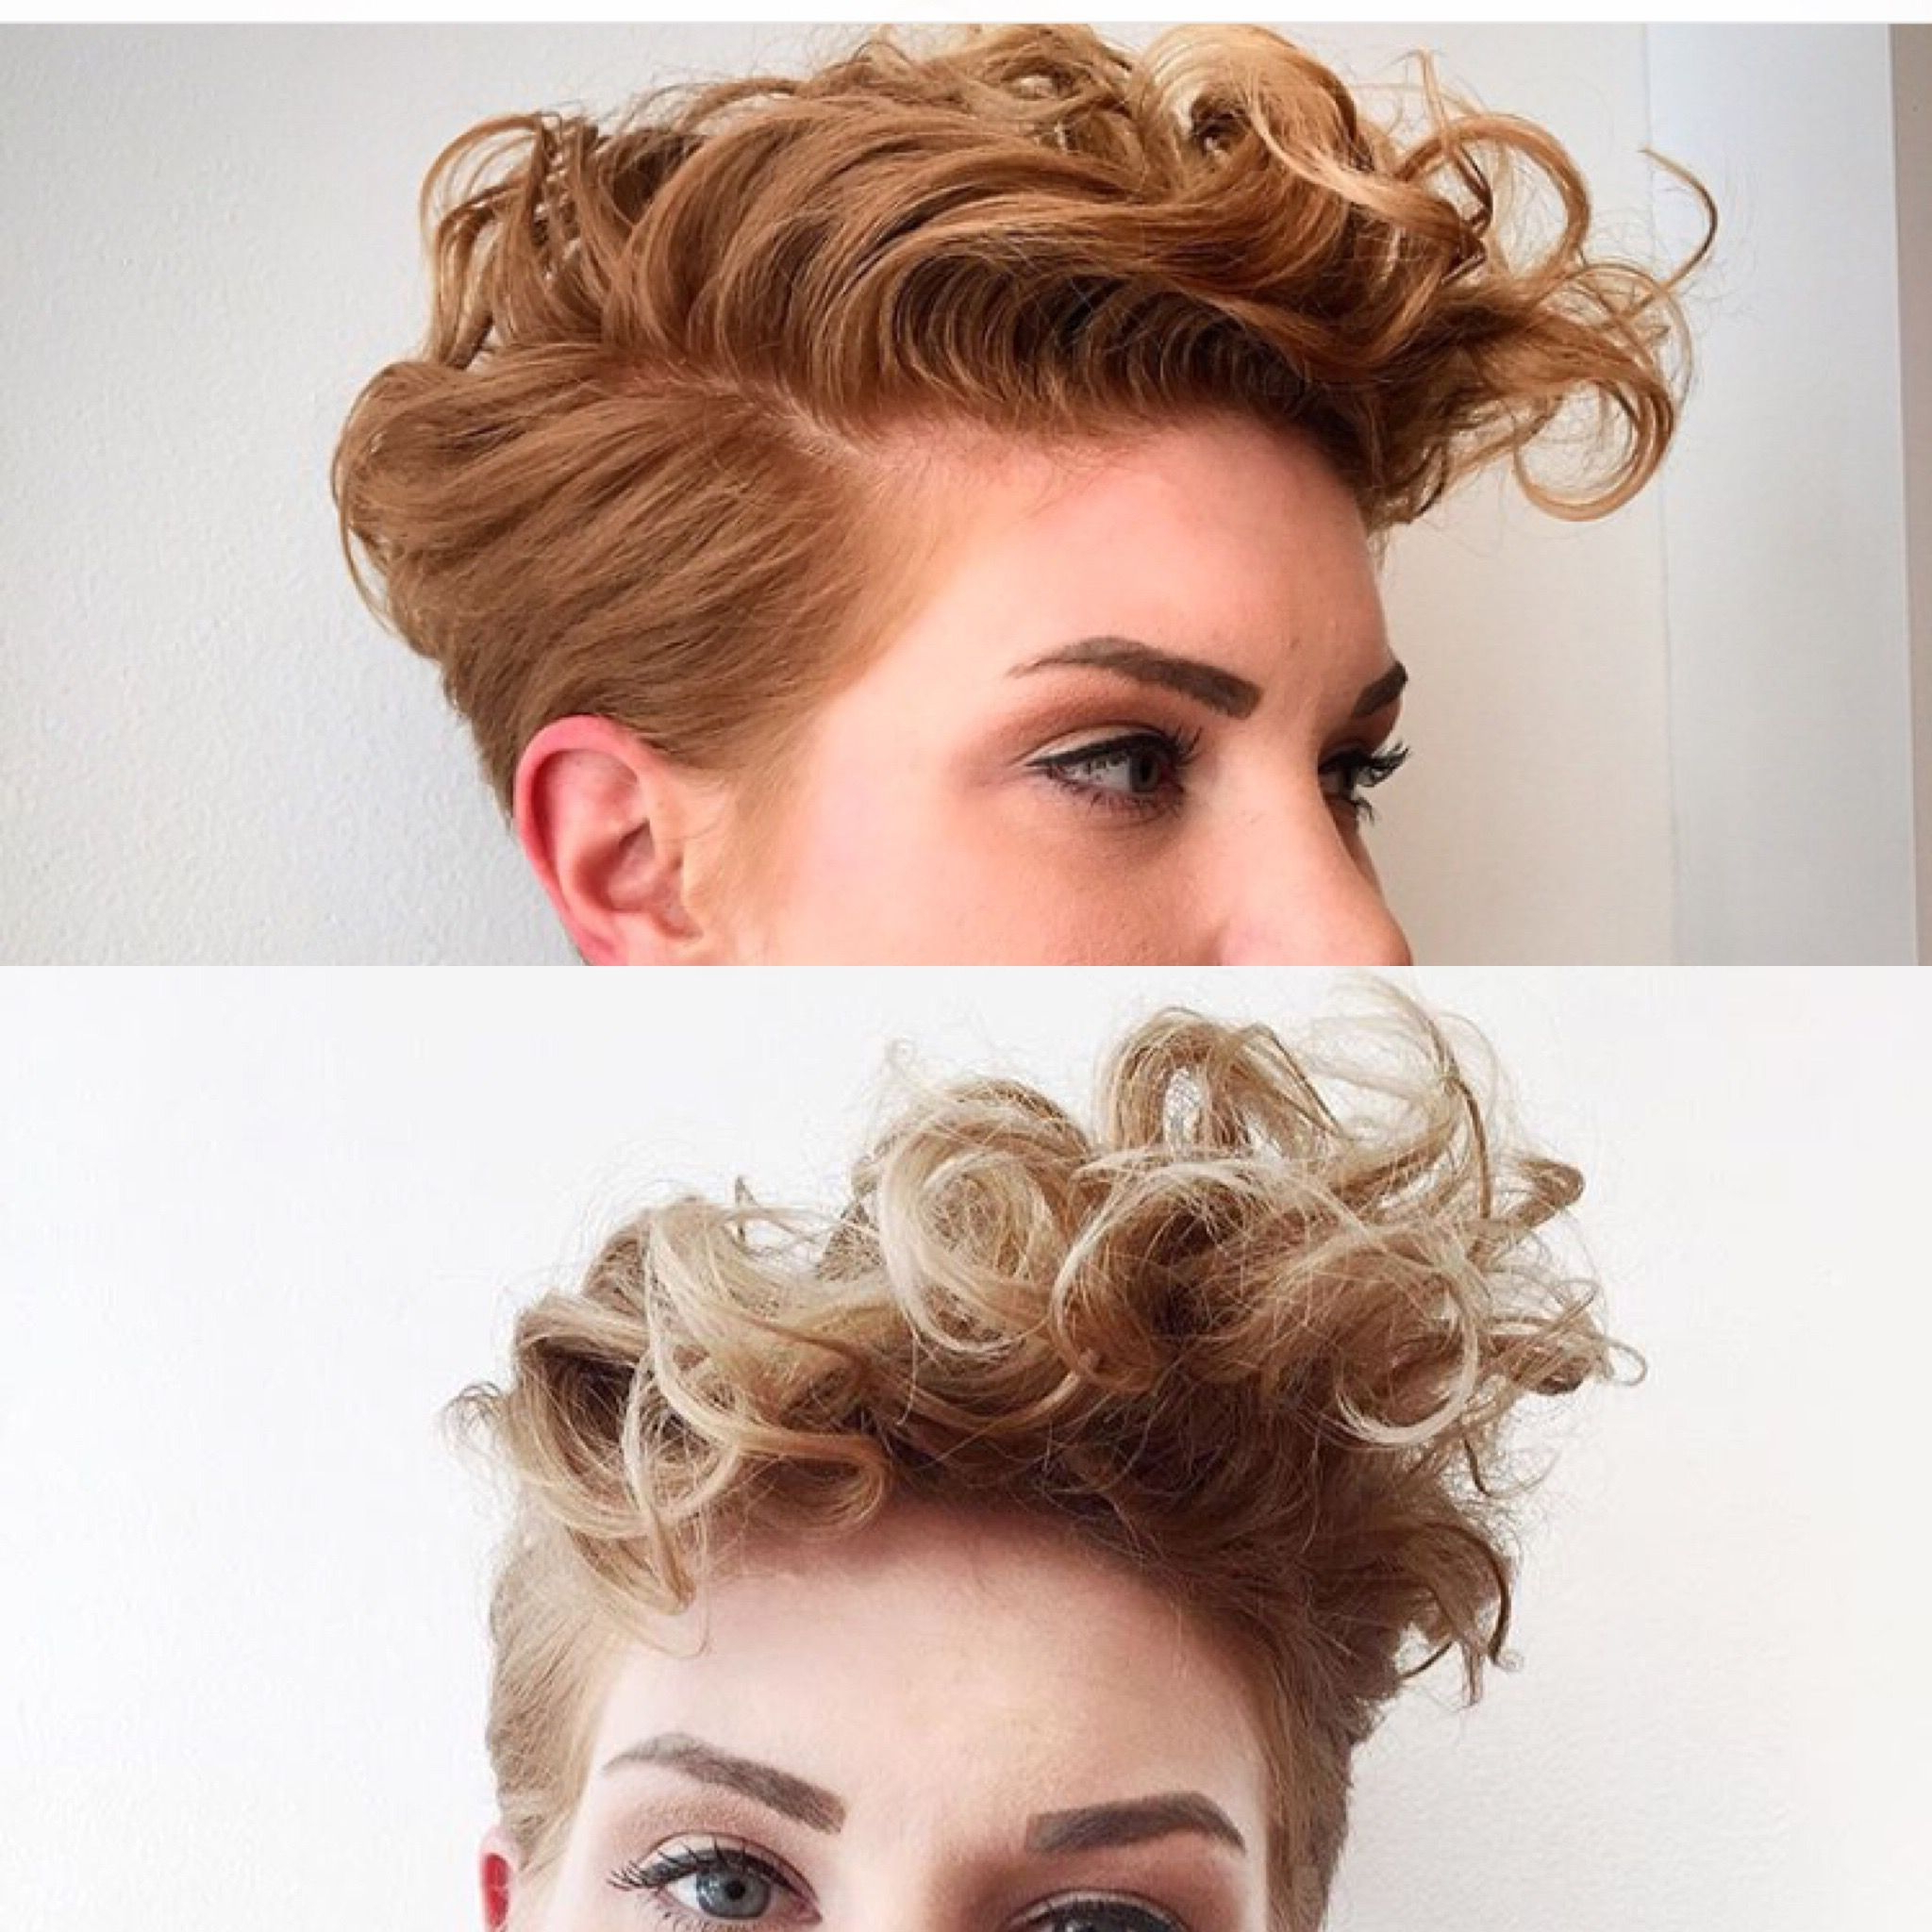 Curly Pixie Faux Hawk … | Pixies In 2018 | Pinterest | Curly Pixie Pertaining To Tapered Brown Pixie Hairstyles With Ginger Curls (View 14 of 25)